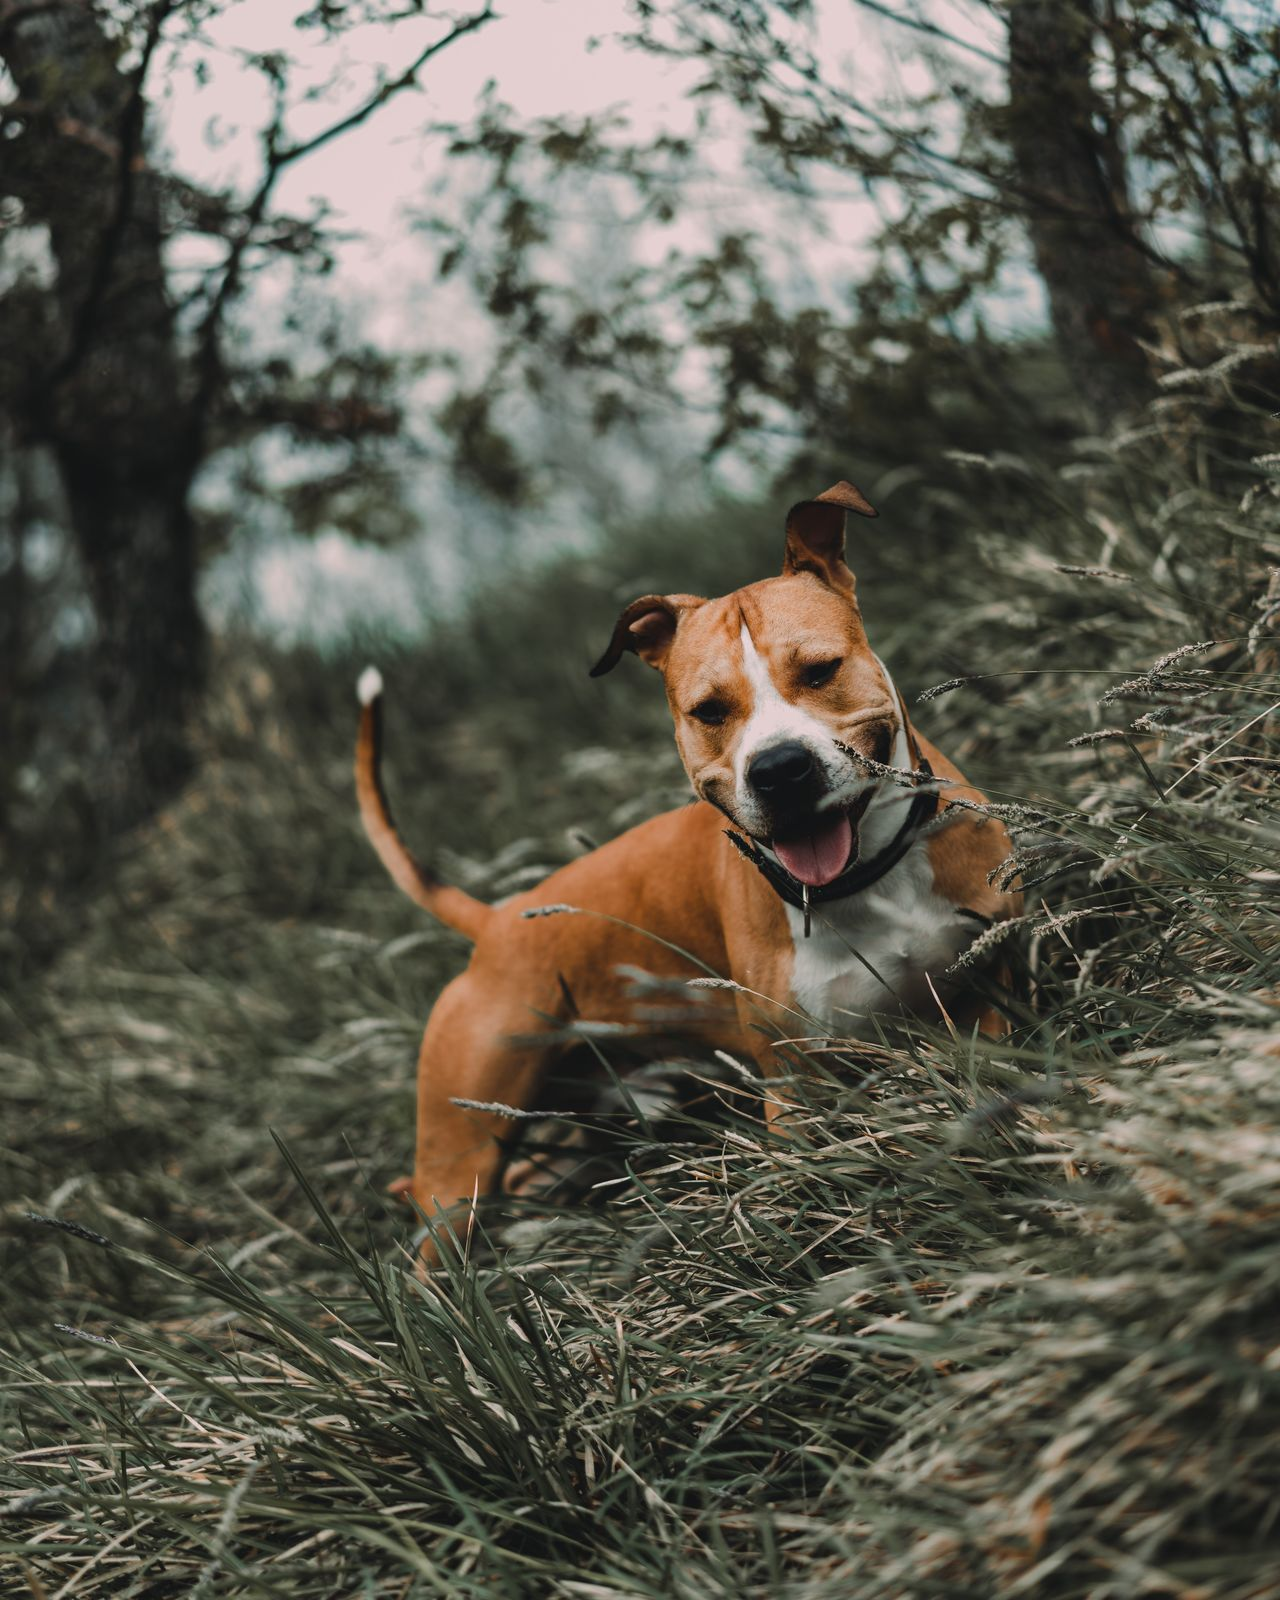 Dog One Animal Pets Outdoors No People Portrait Mammal Day Nature Water Animal Themes Domestic Animals Protruding Tree Grass